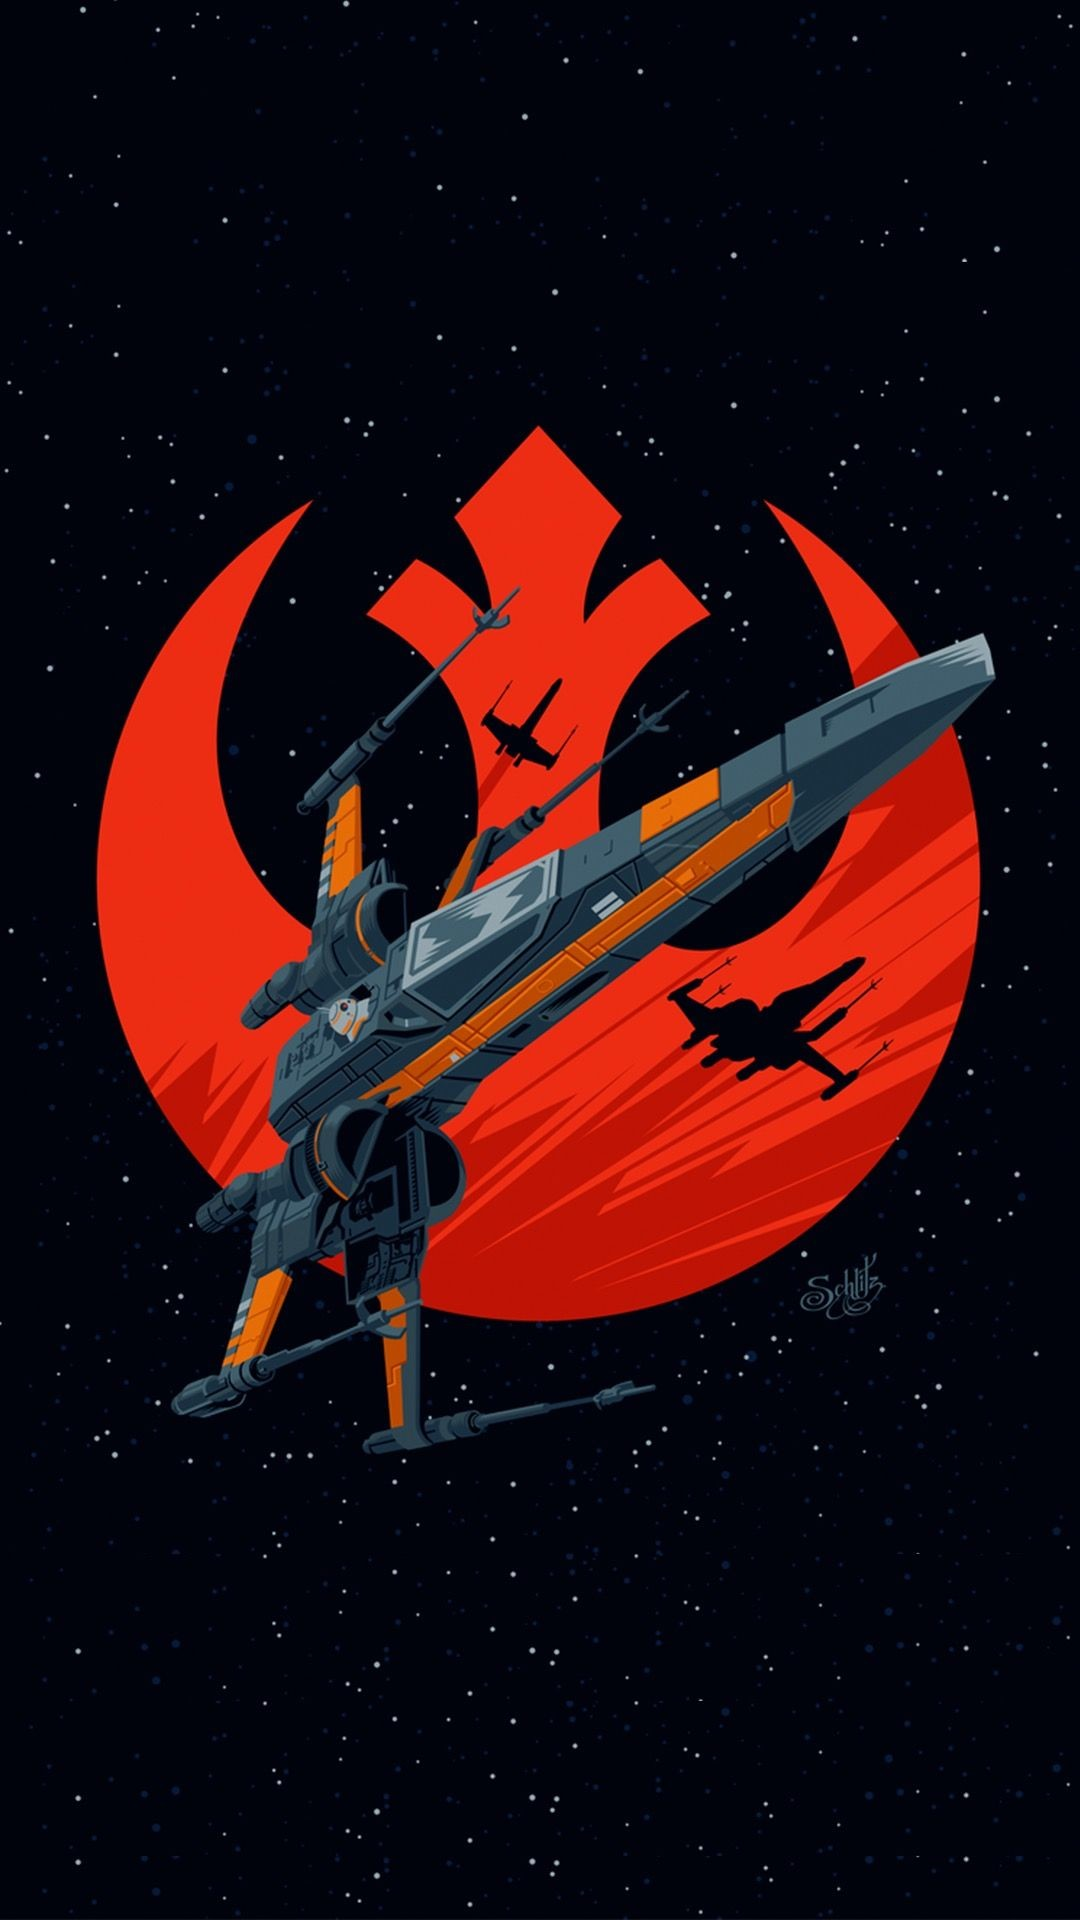 Rebel Alliance Logo Wallpaper Posted By Christopher Peltier